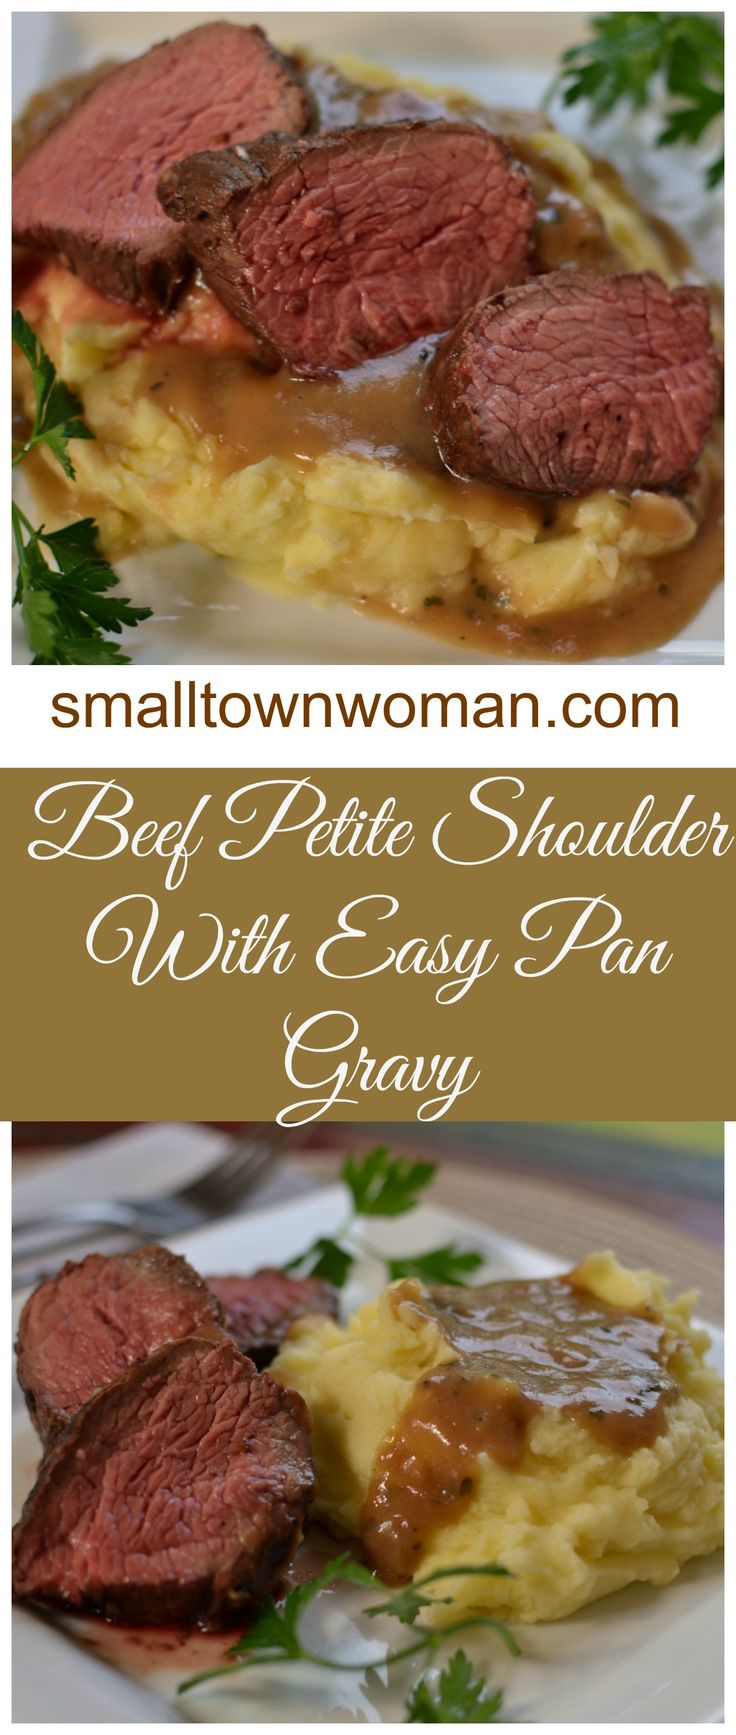 This Beef Petite Shoulder with Pan Gravy is by far one of my favorite recipes!